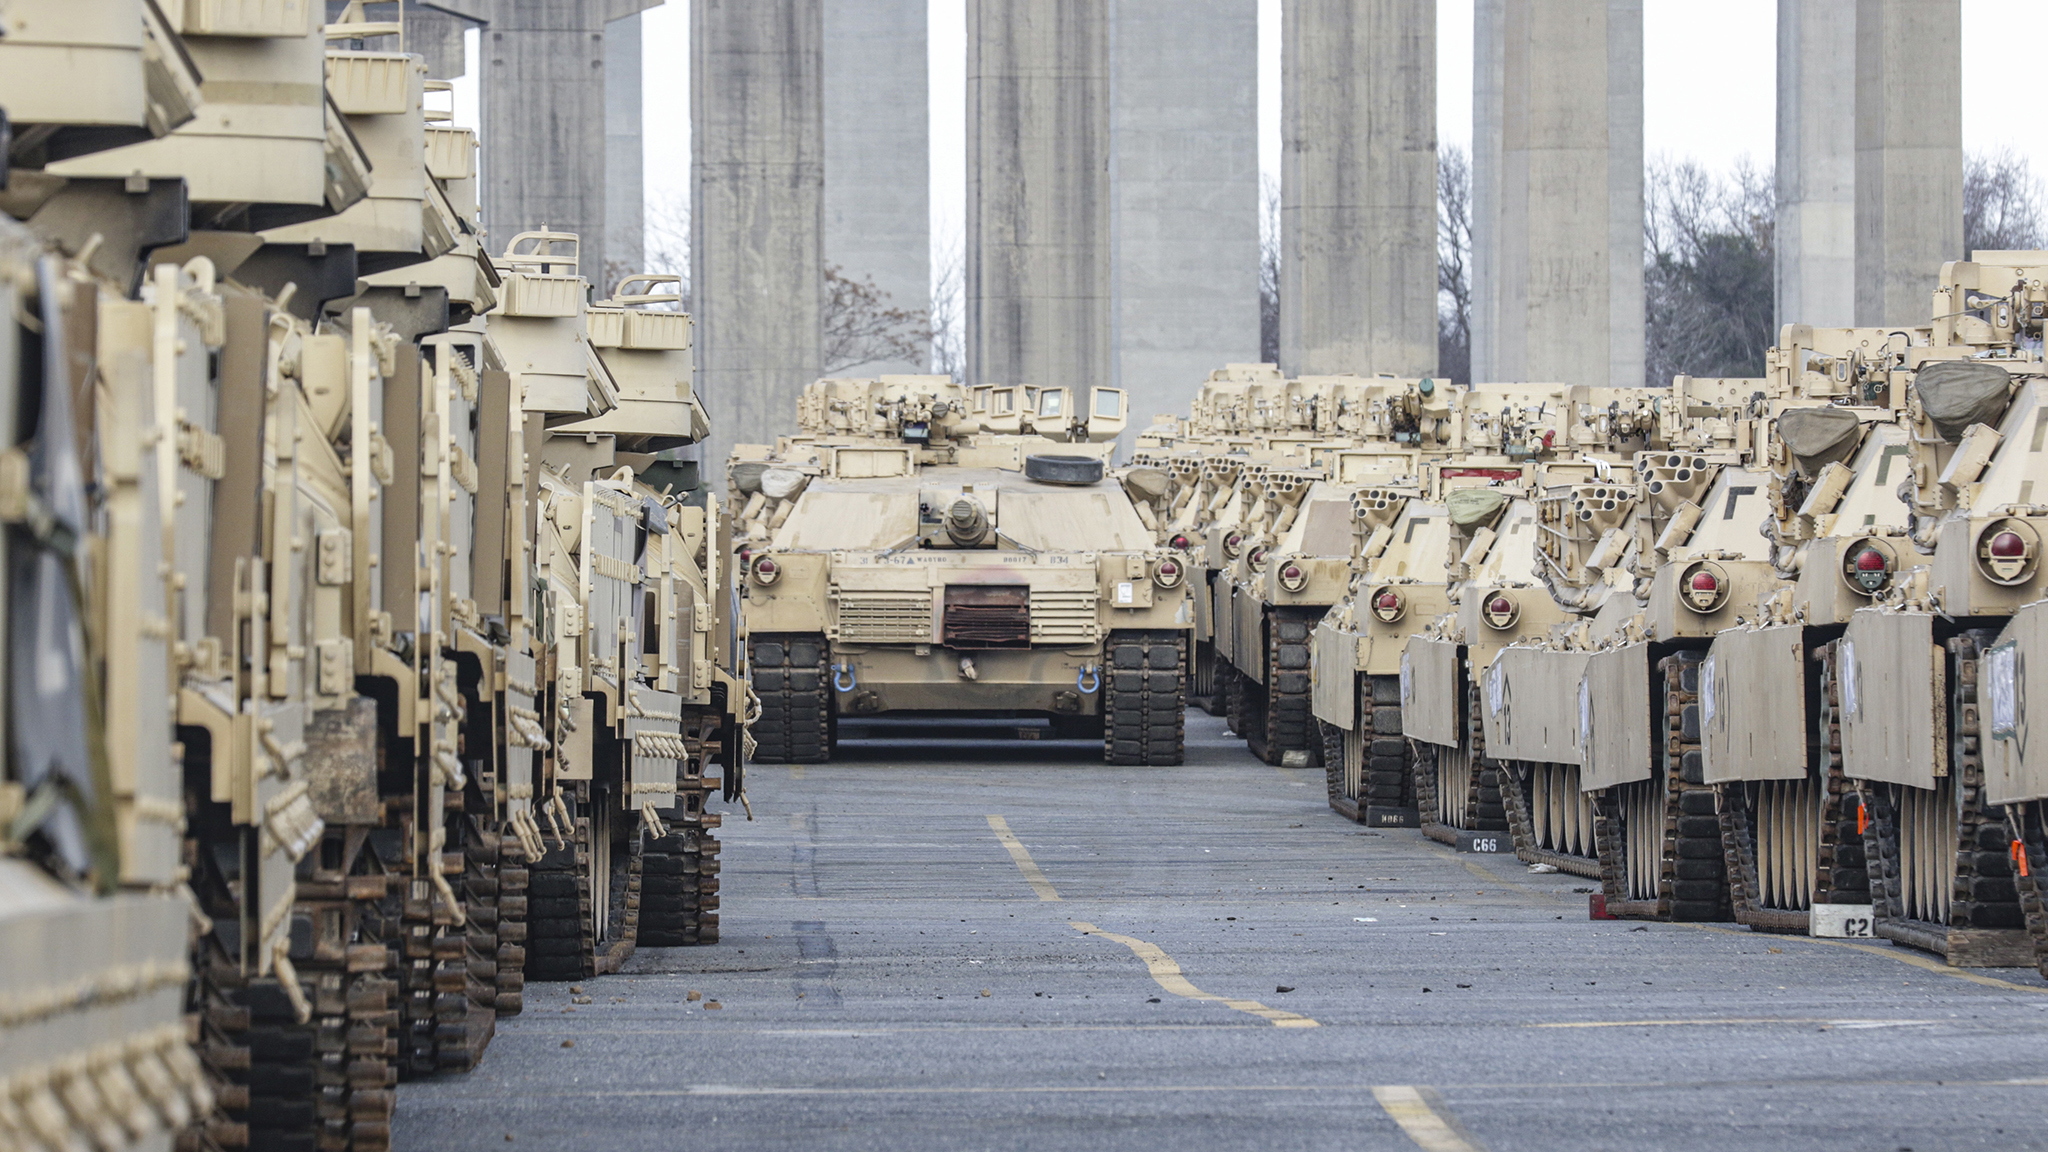 An M1A1 Abrams Tank sits in the distance among various armored track vehicles in Savannah, GA, on Feb. 5, 2020. This equipment was staged in preparation for the DEFENDER-Europe 20 exercise which takes place in multiple European countries. Strategic readiness includes the ability of the U.S. military to dynamically project force and set the theater by mobilizing and deploying forces, sustaining them in a crisis, and redeploying them when their mission is complete. (U.S. Army Photo by Pfc. Daniel Alkana/ 22nd Mobile Public Affairs Detachment)